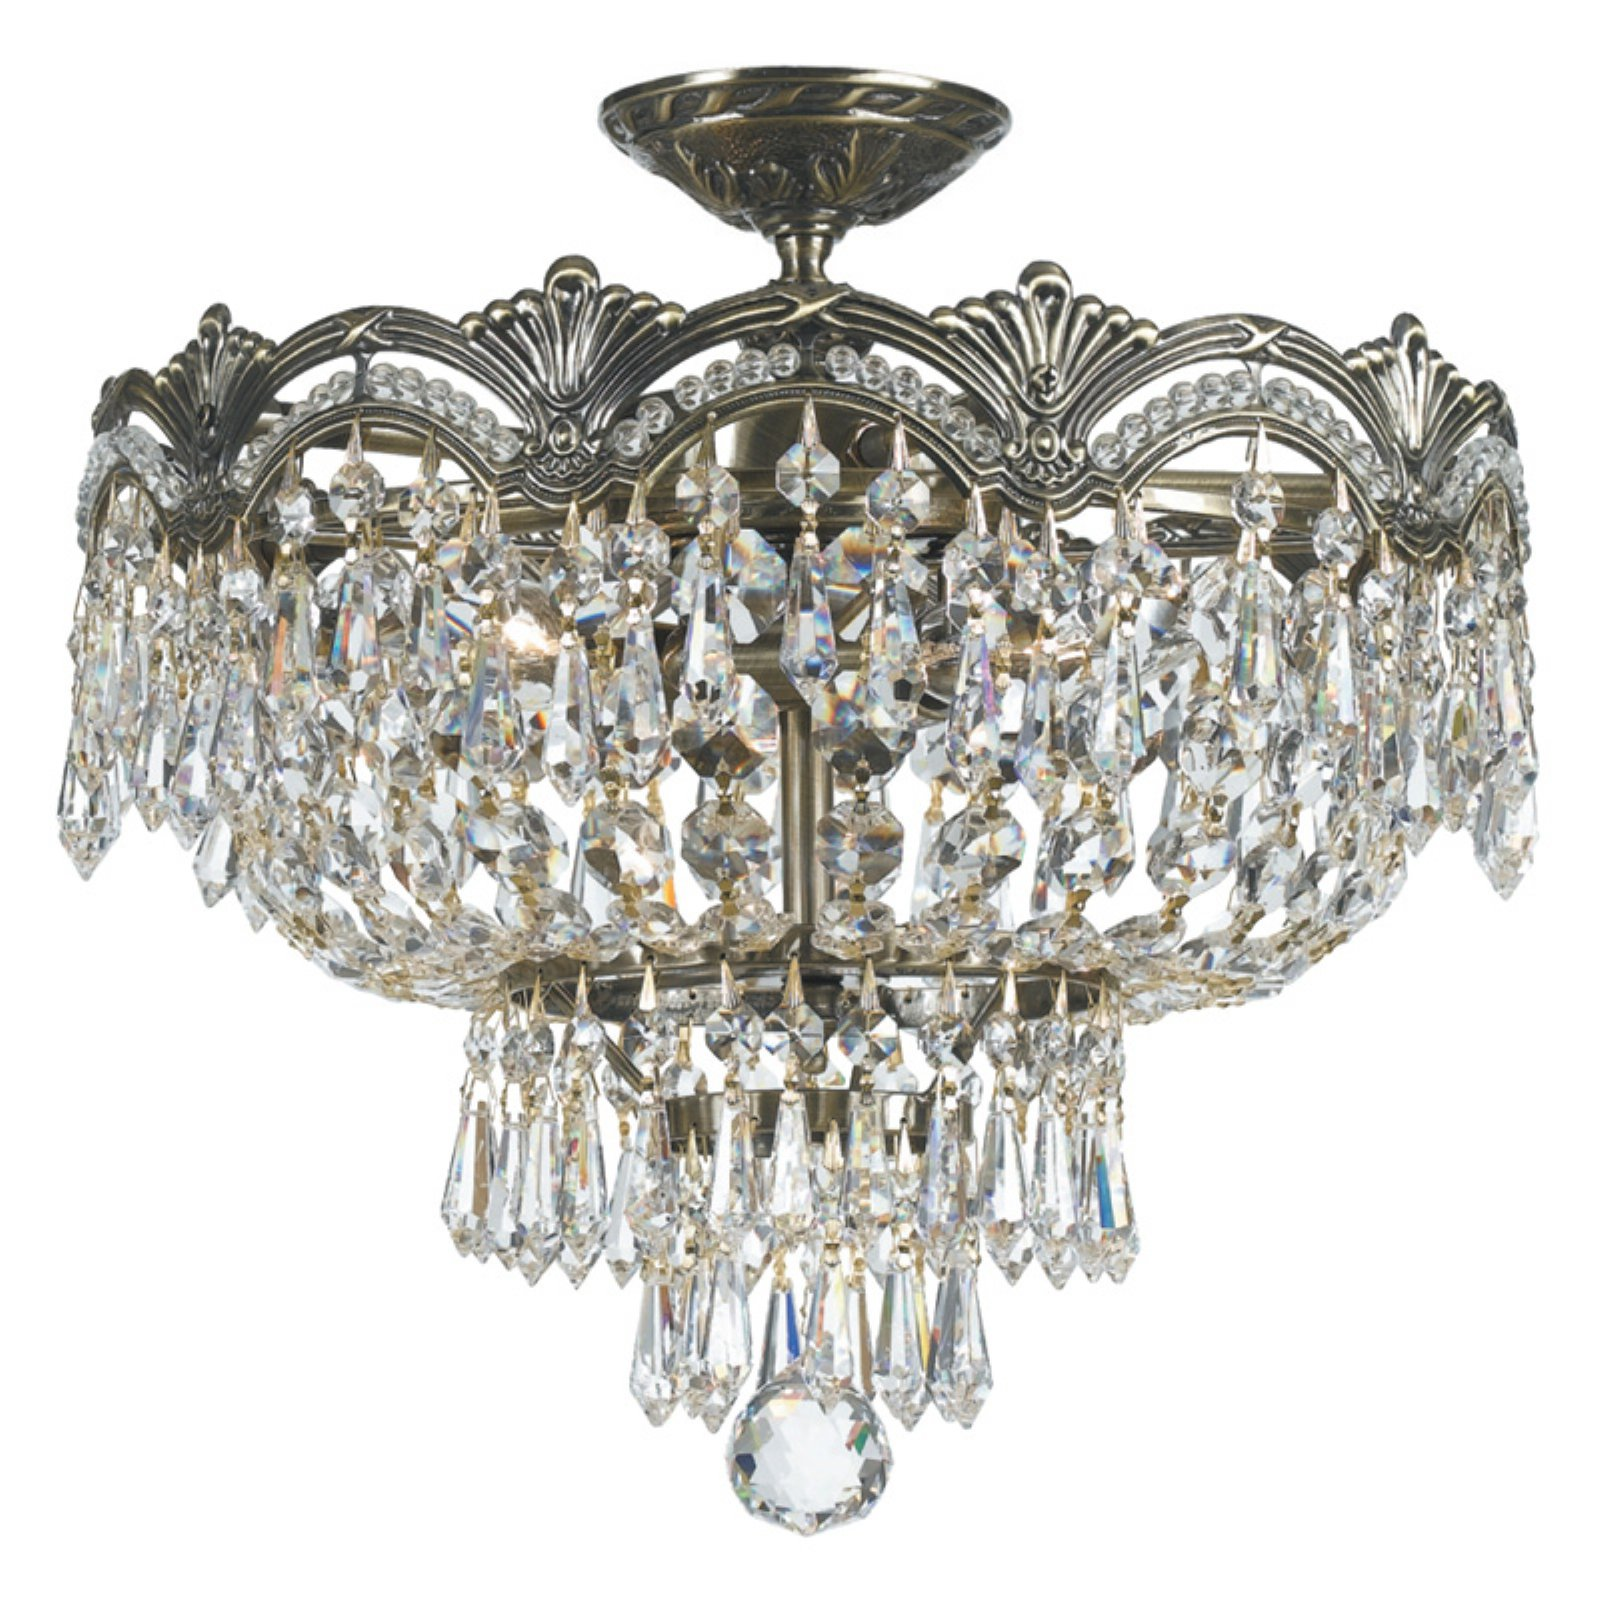 Crystorama 1483-HB-CL-MWP Majestic Crystal Semi-Flush Mount Light 14W in. by Crystorama